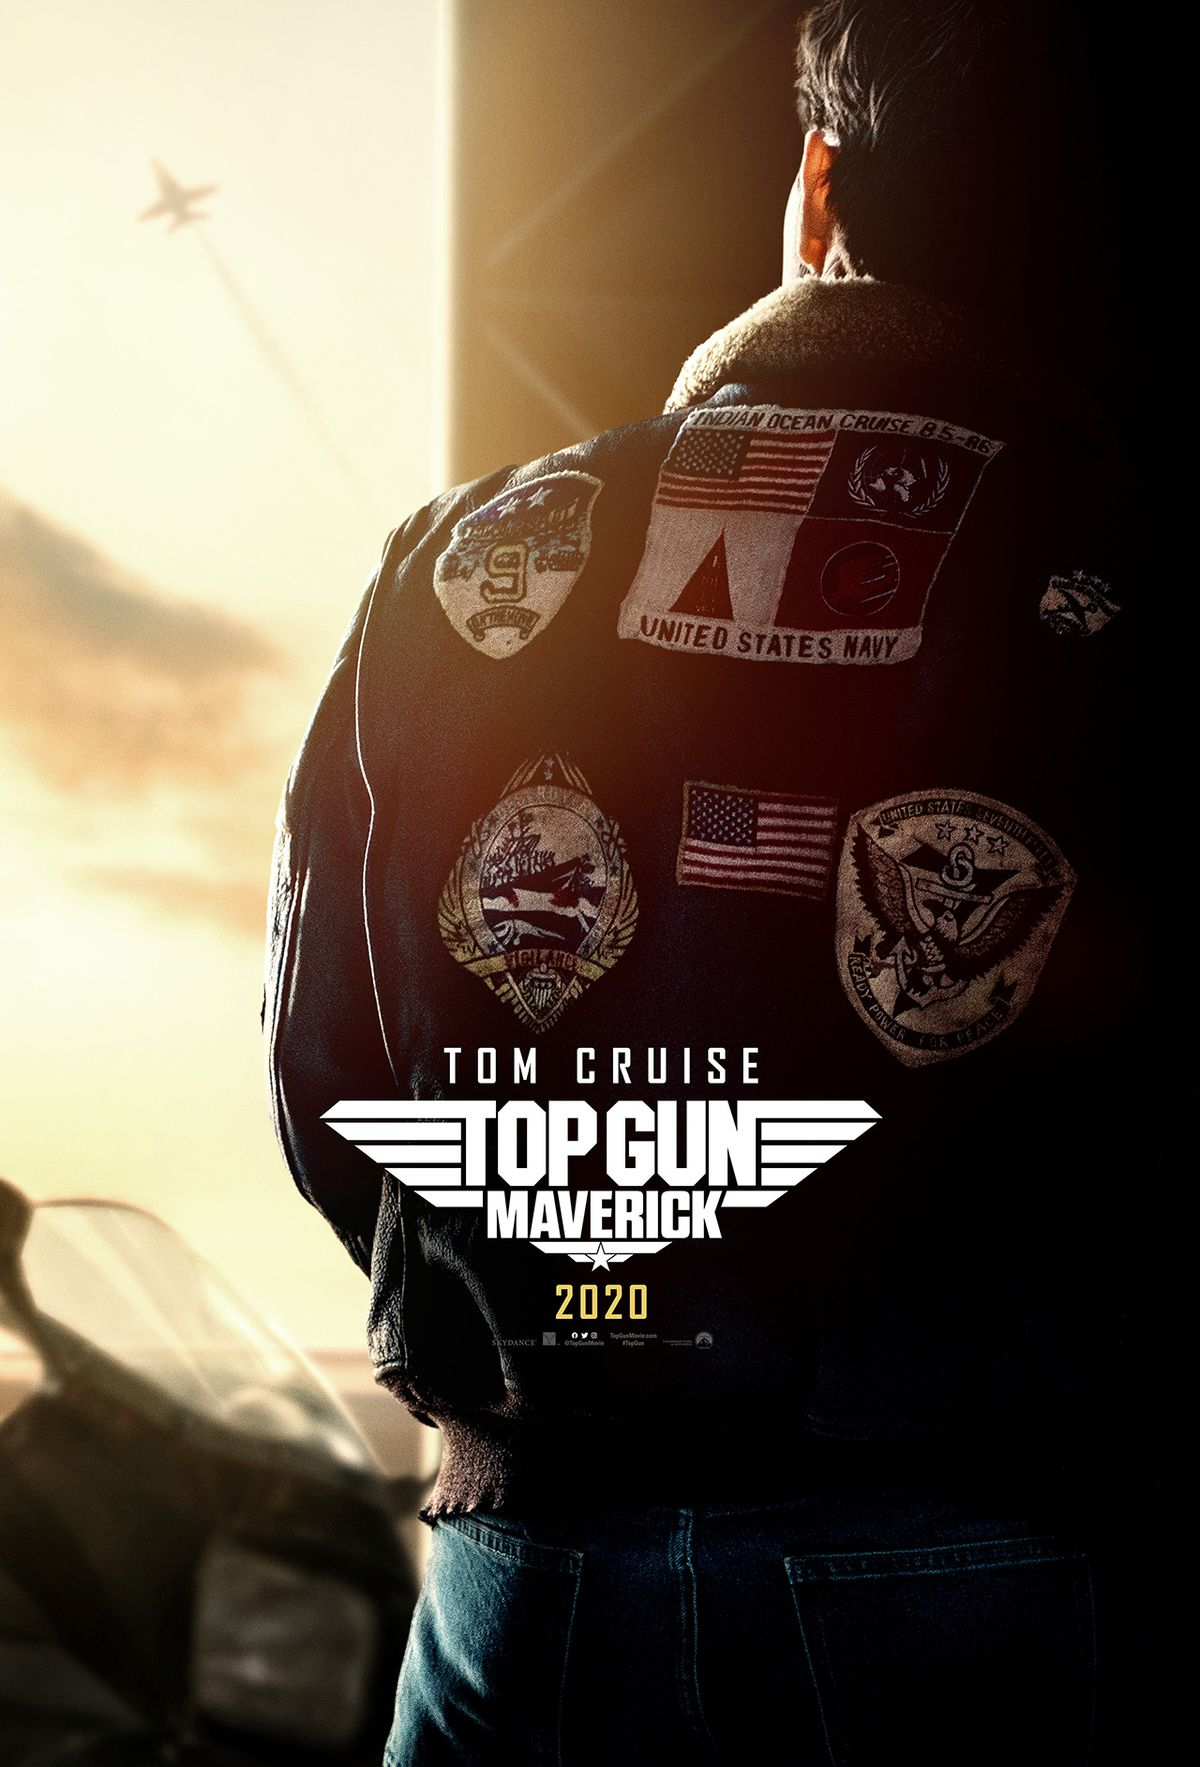 ¡Top Gun regresa a la pantalla grande! Checa el trailer.